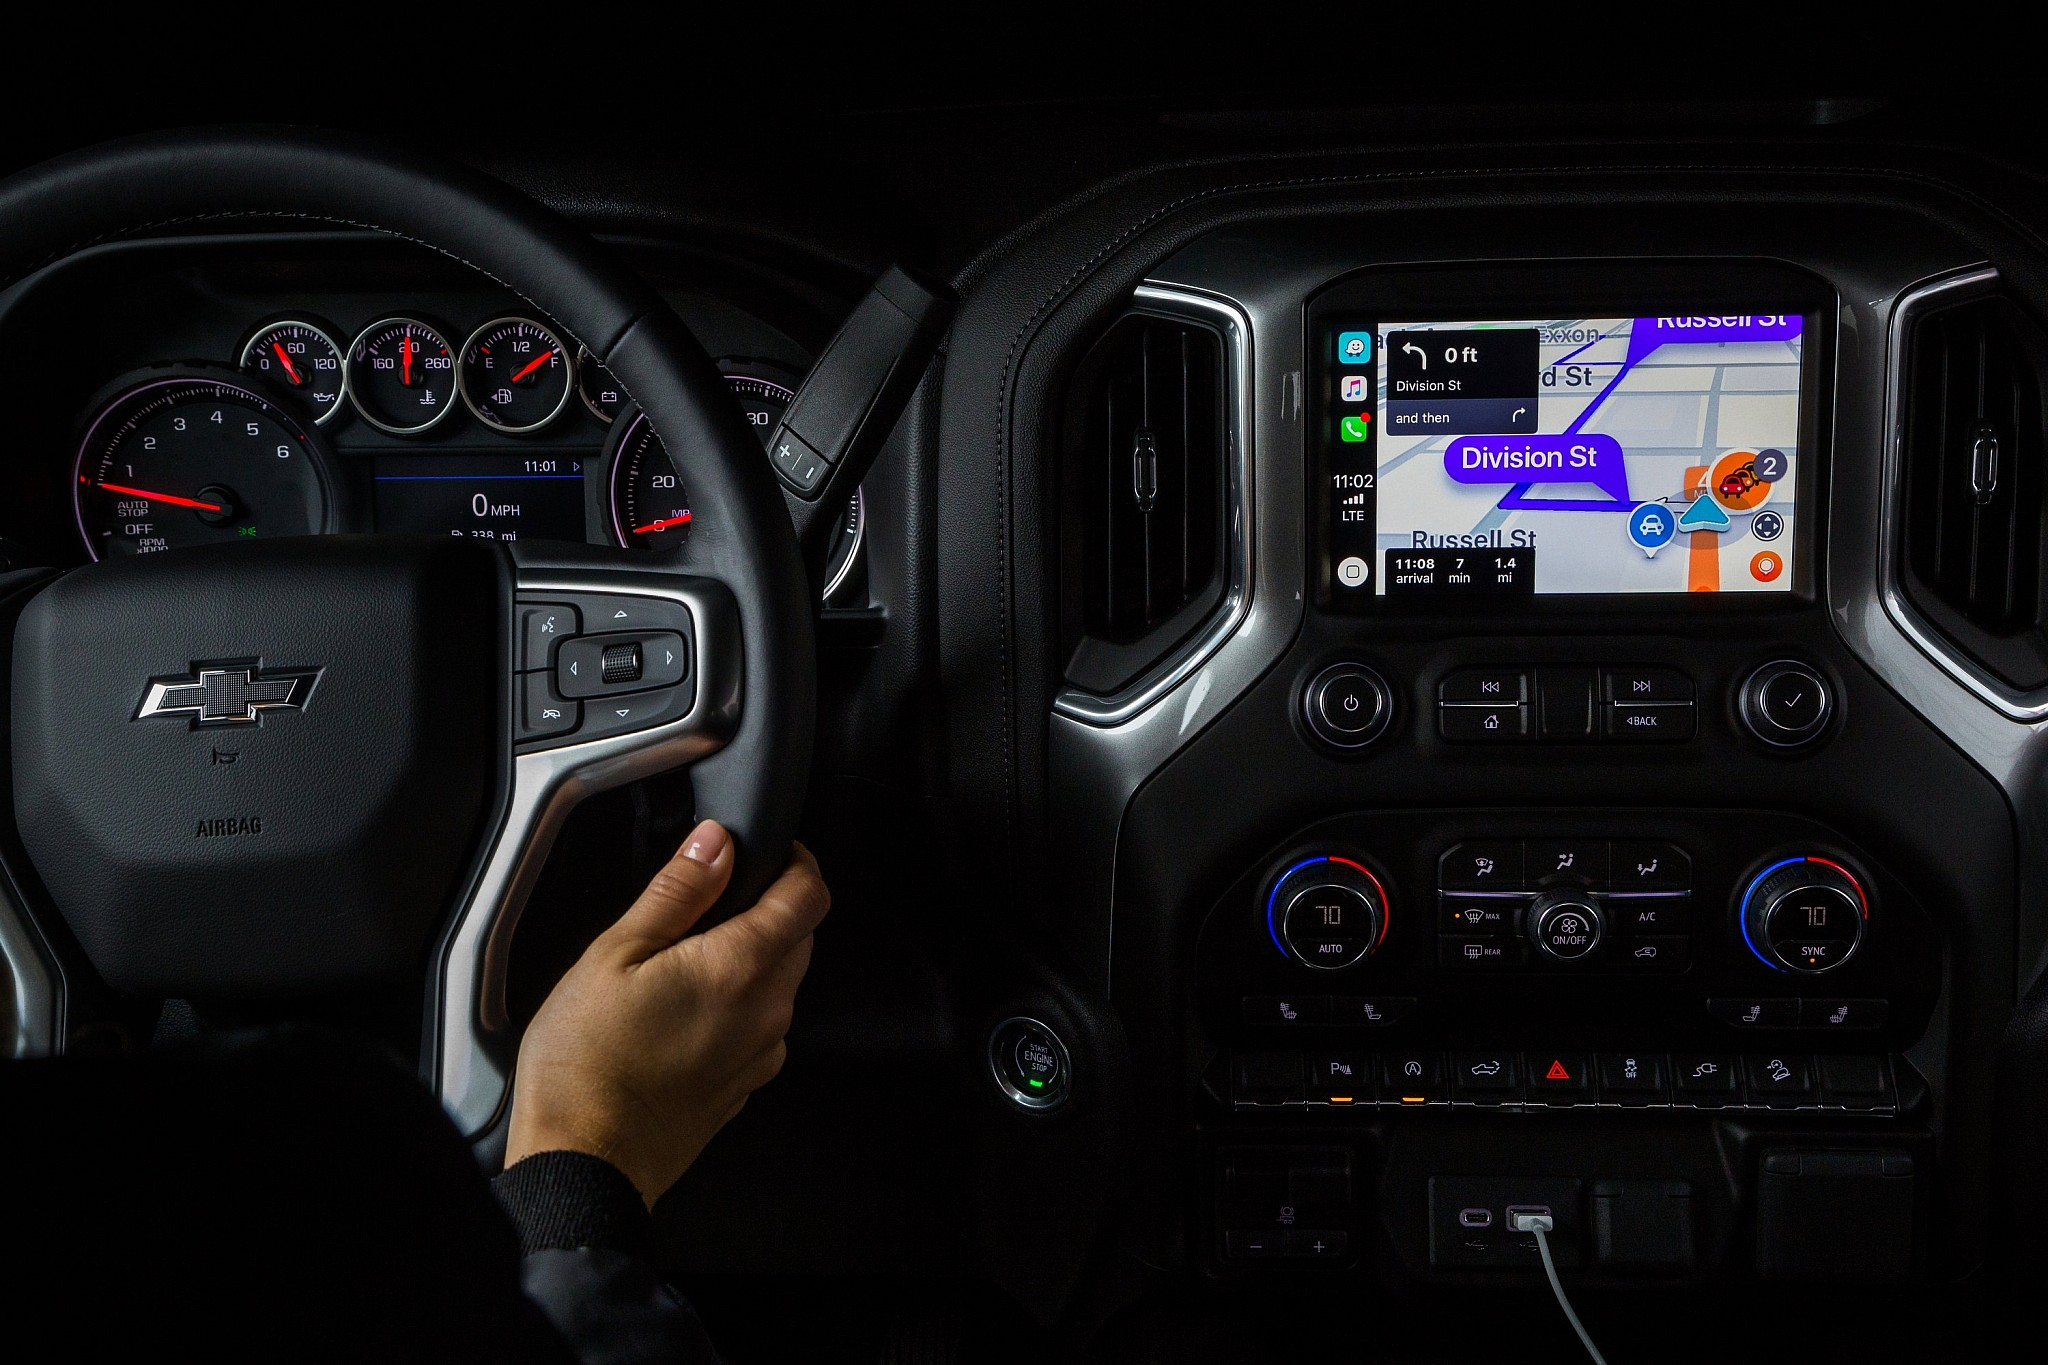 Waze App To Be Integrated Into Apple Carplay System The Times Of